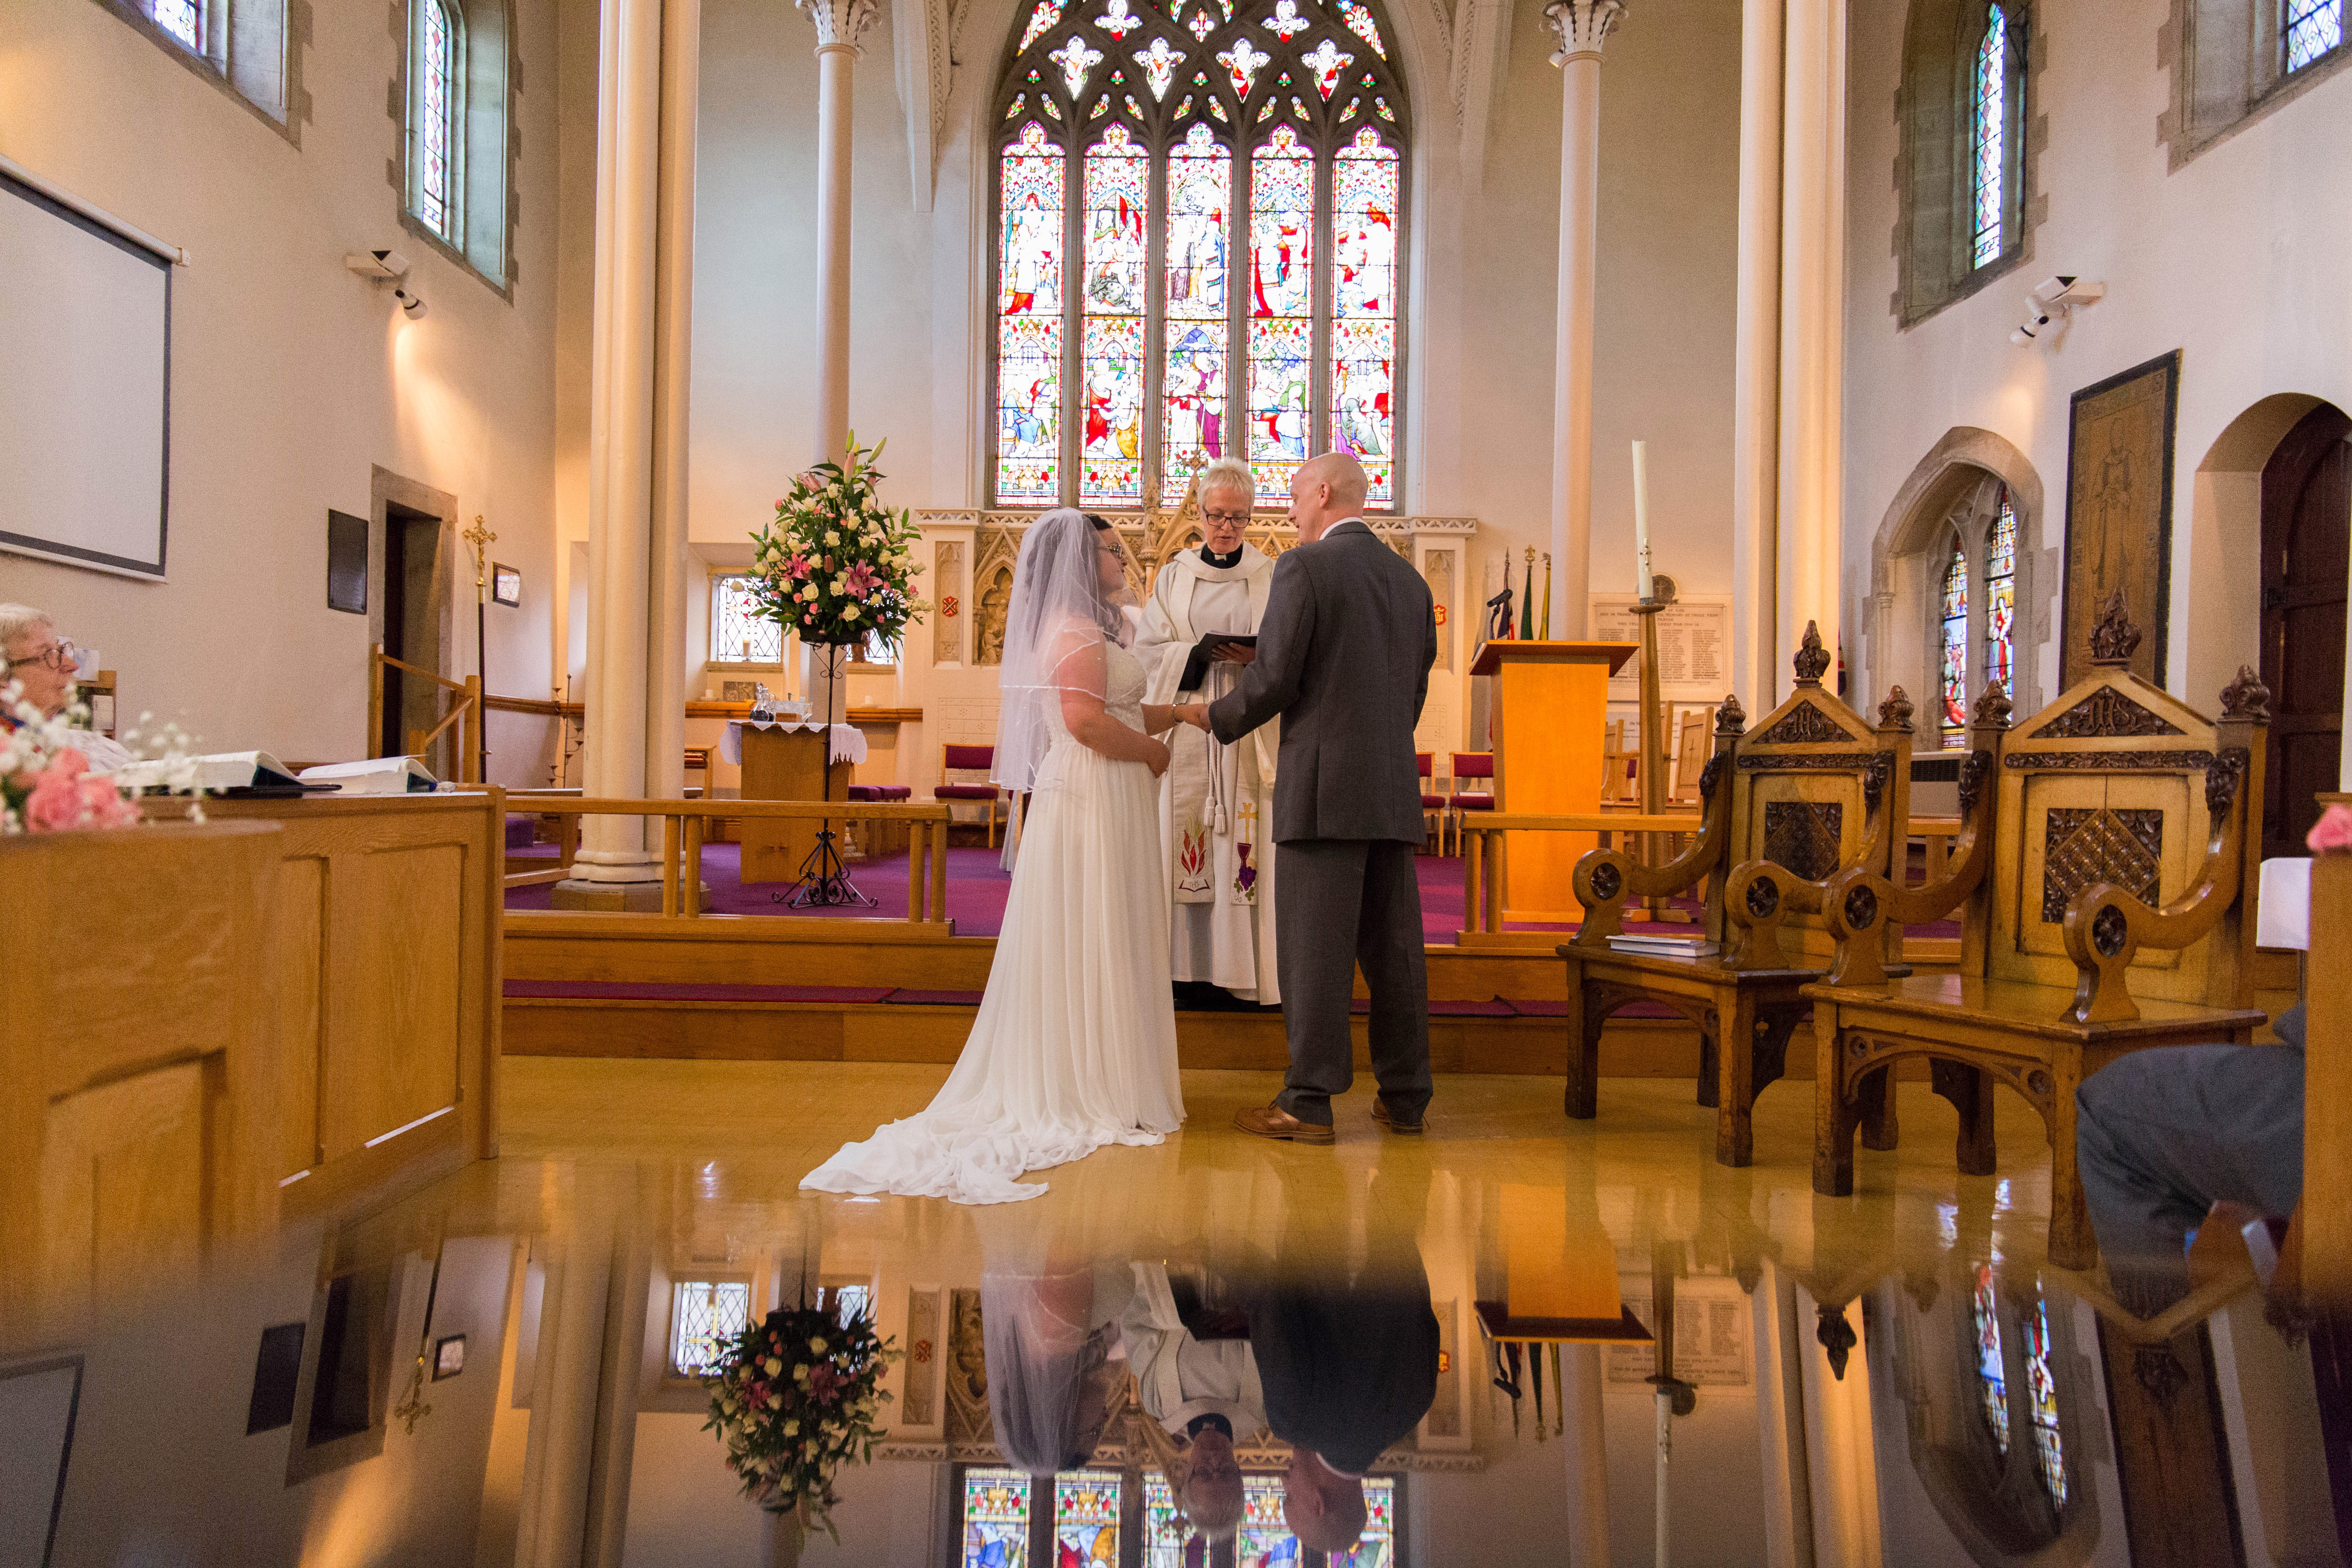 Oldham wedding photographer - bride and groom at wedding ceremony